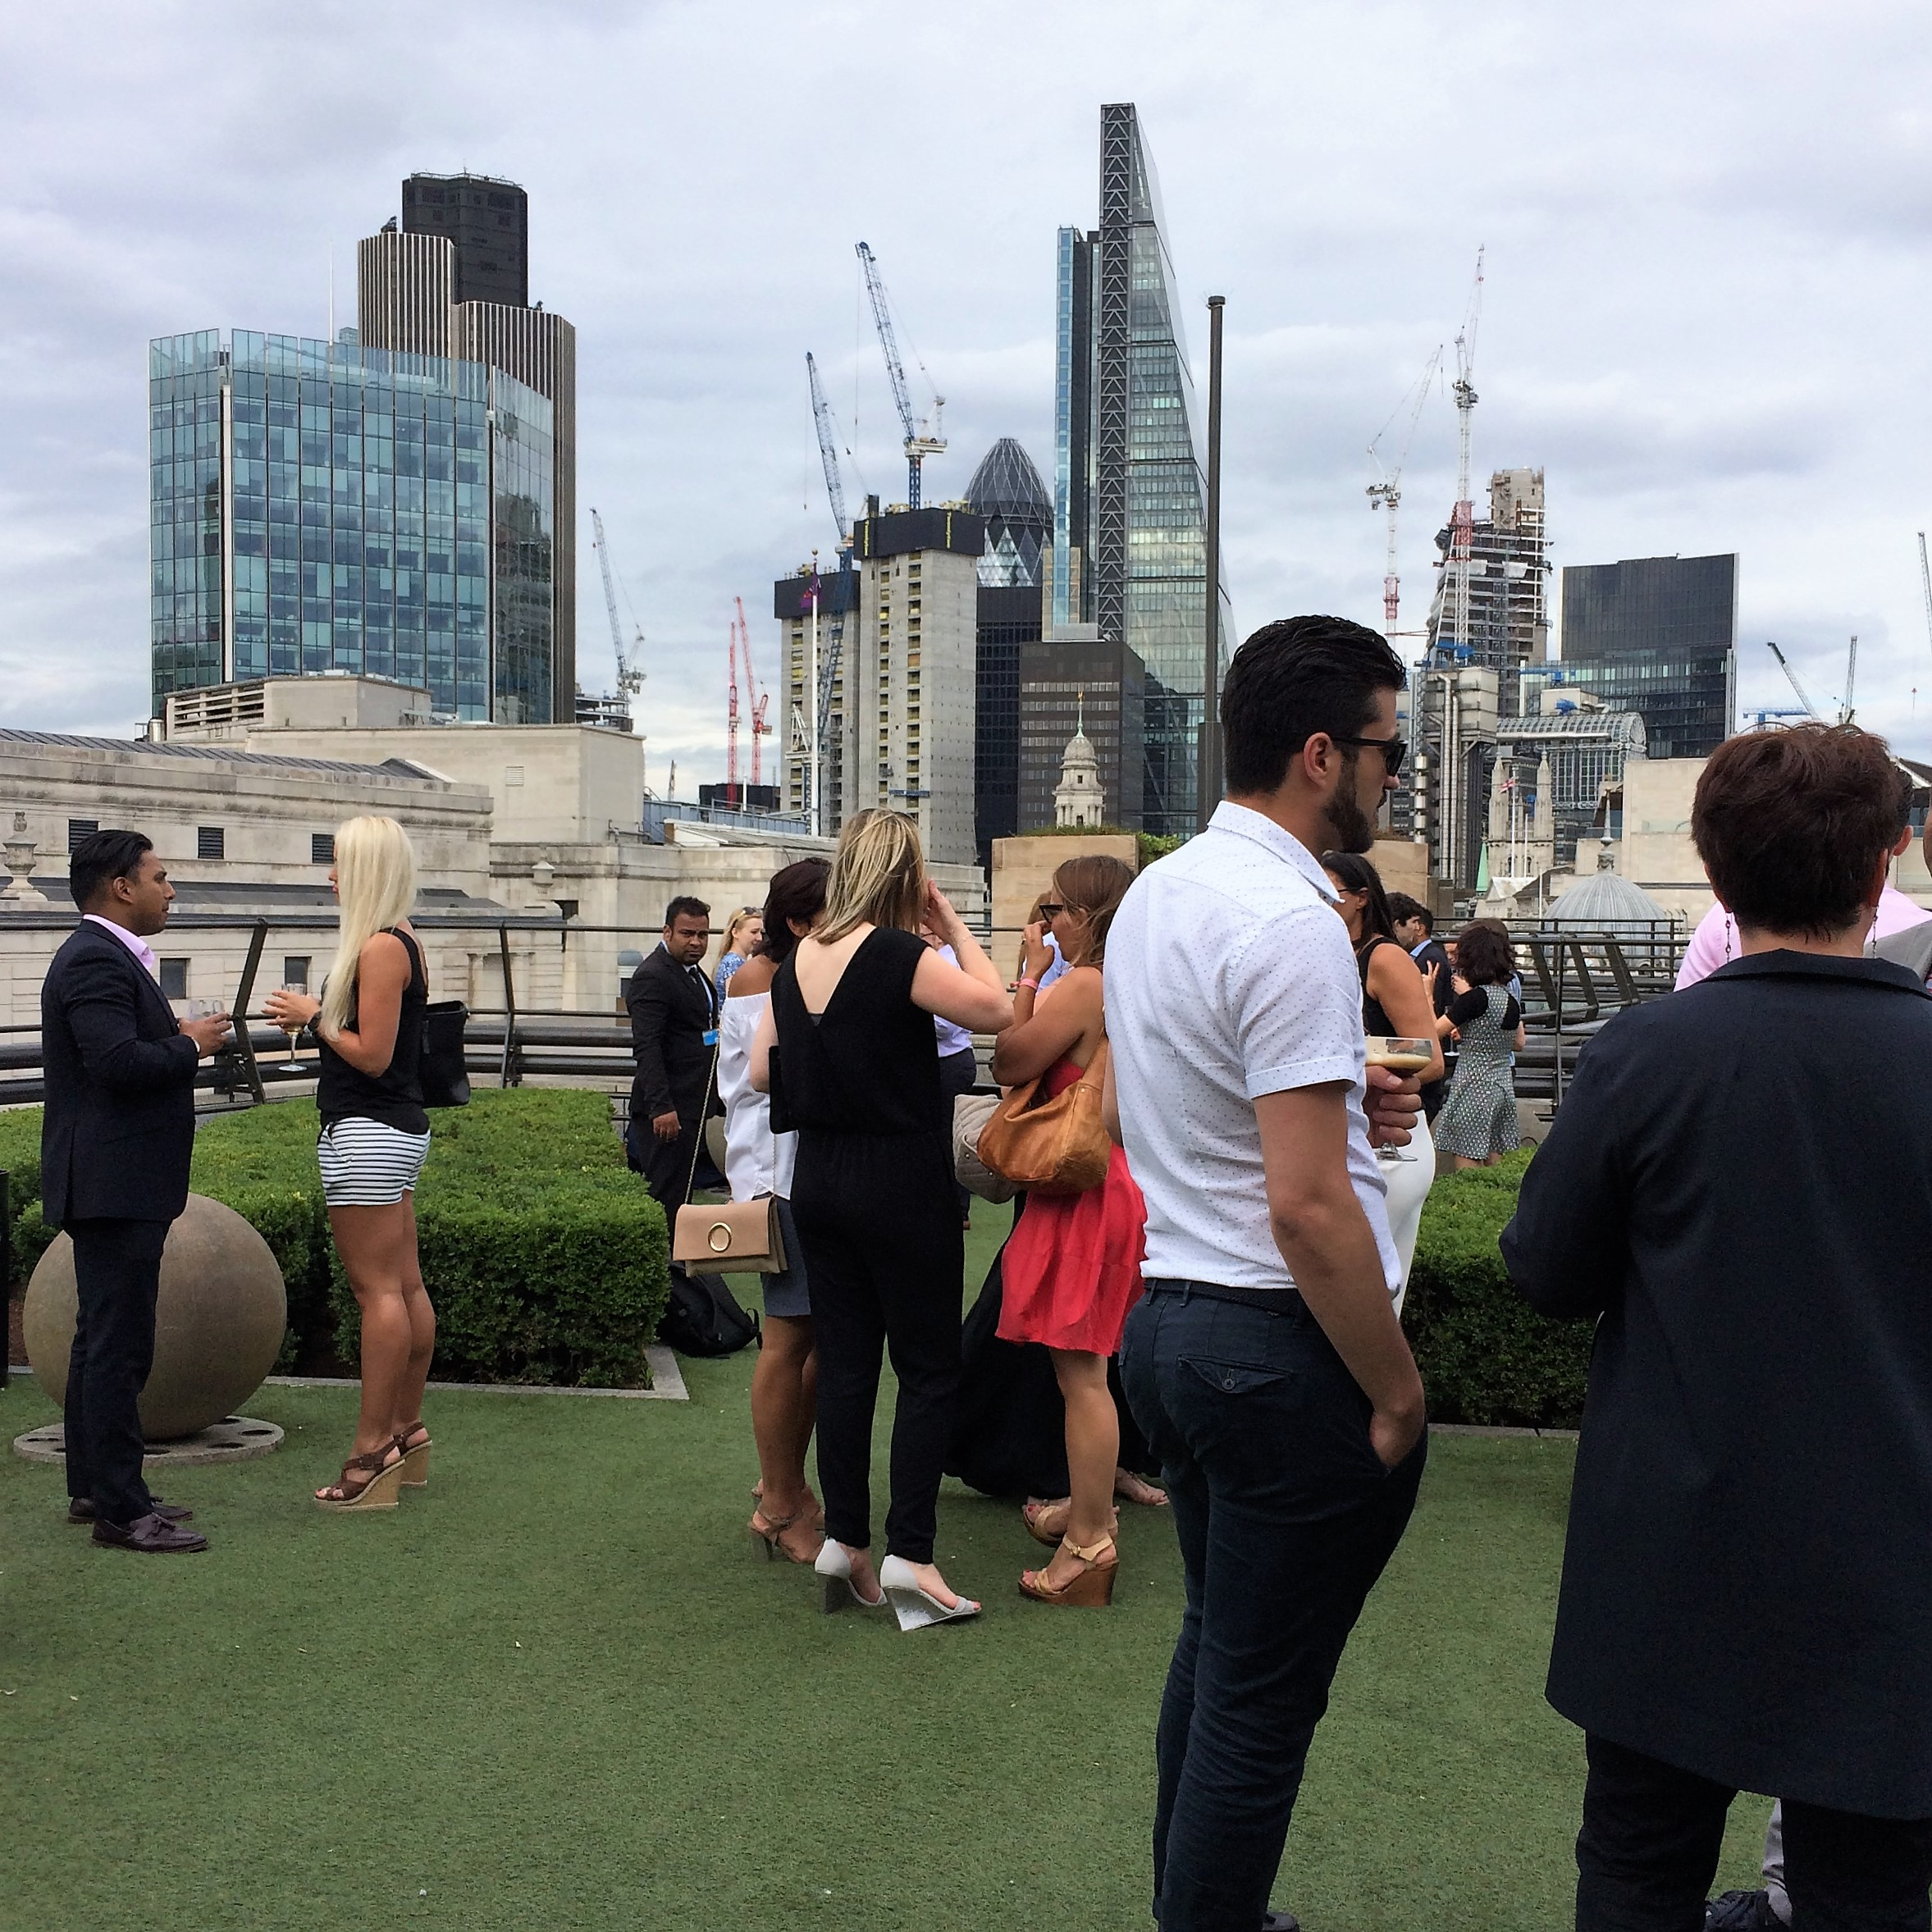 Rooftop terrace at Number One Poultry. Photo: Anthony Denzer.